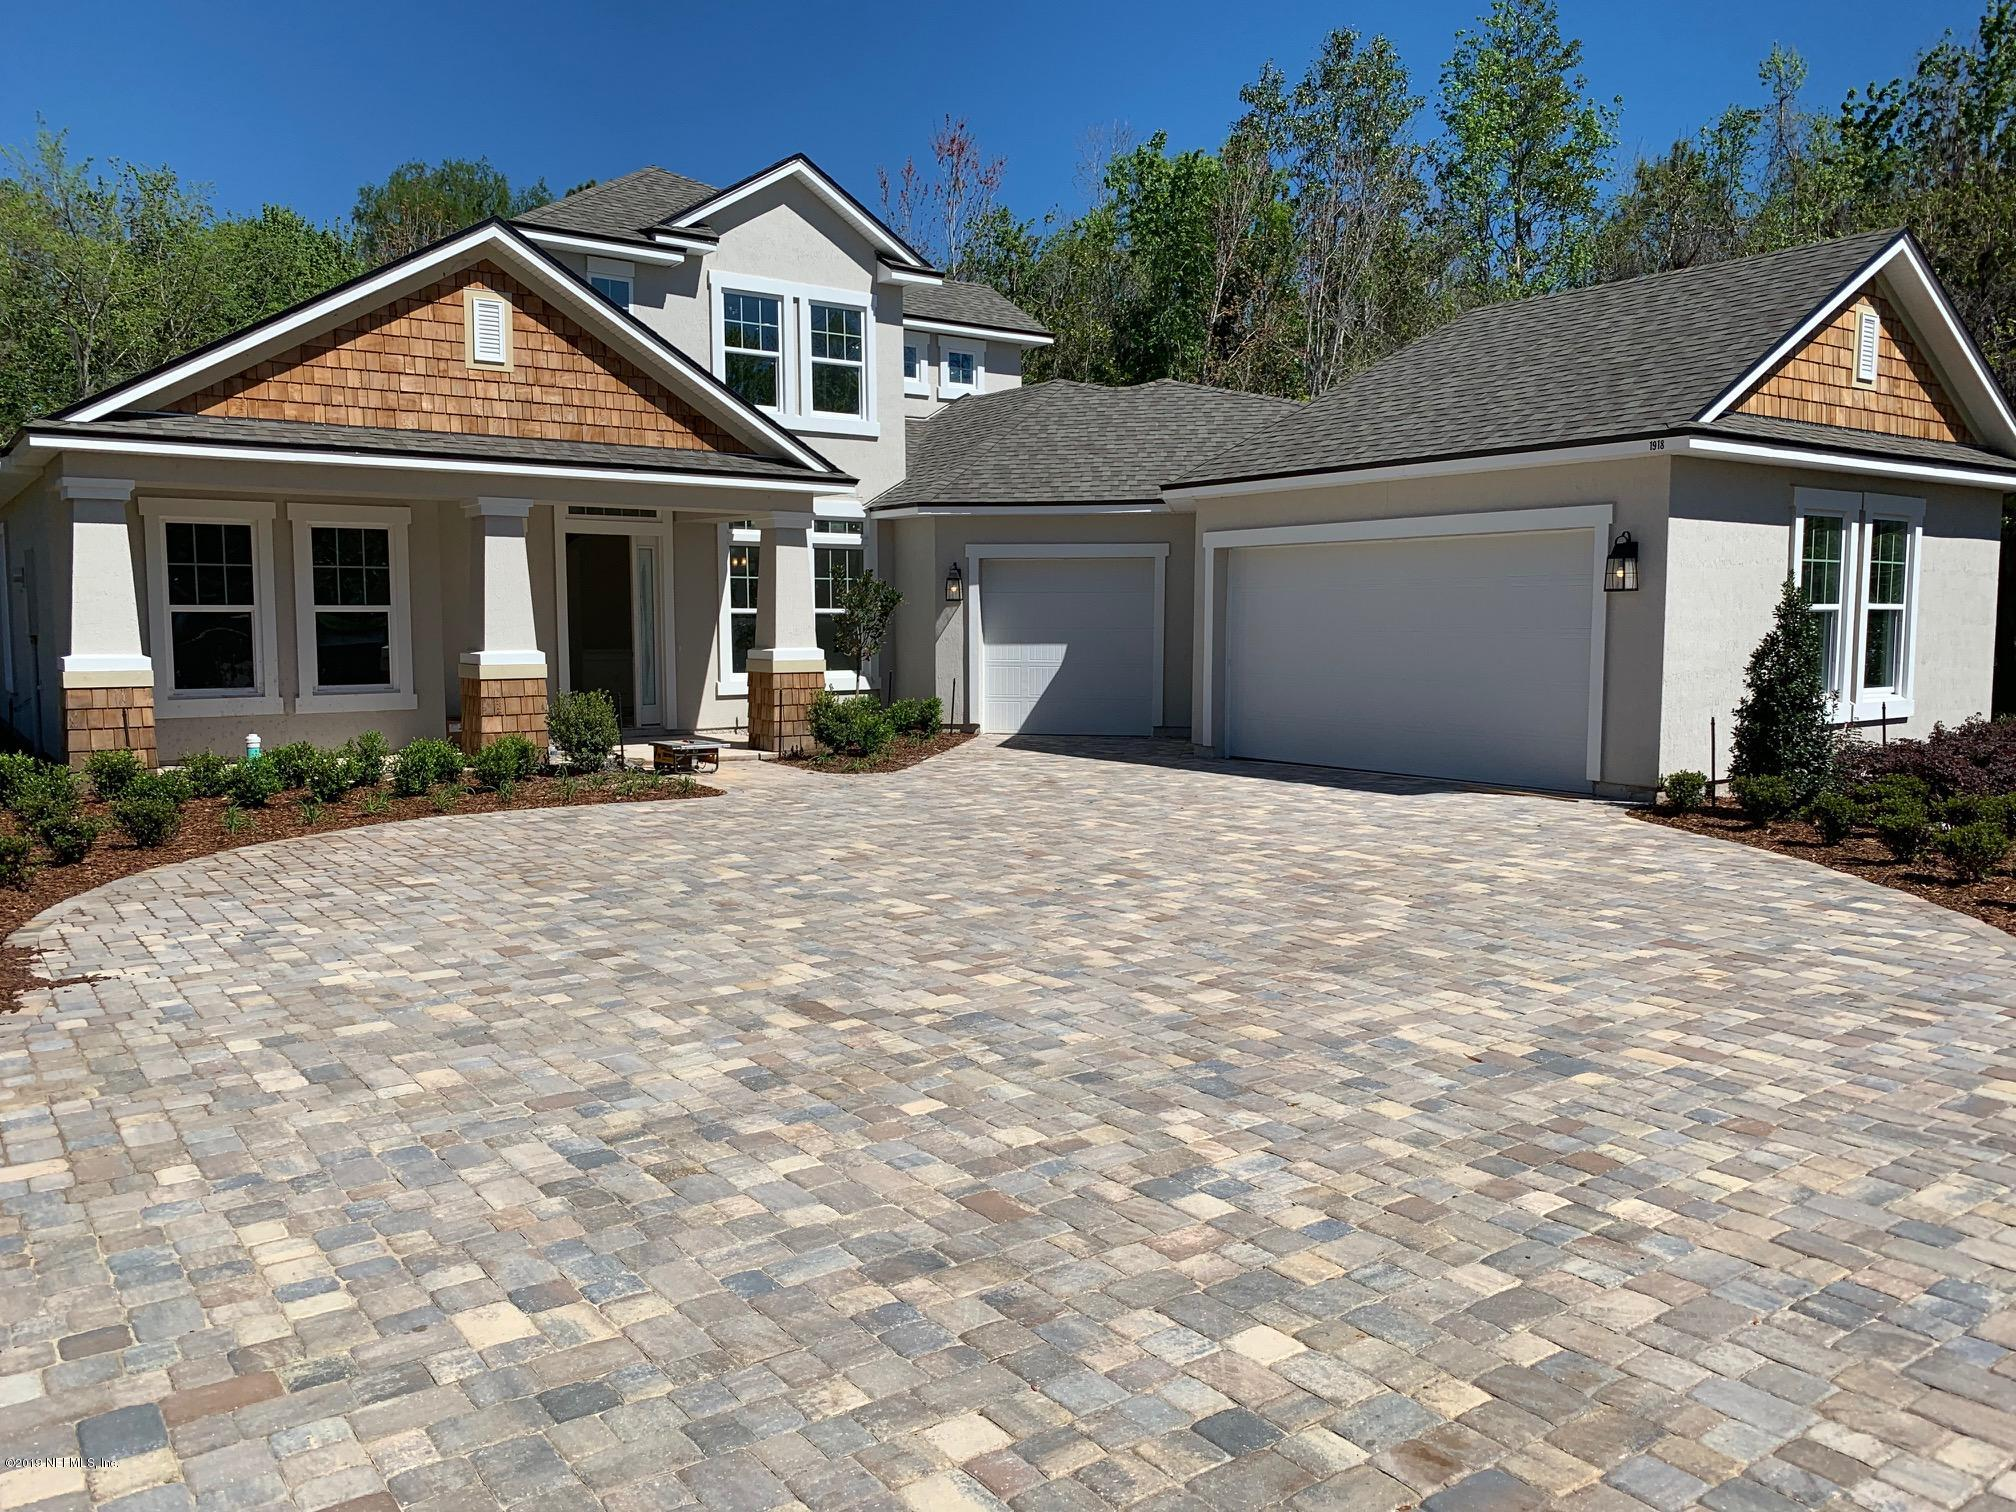 1918 HOLMES, FLEMING ISLAND, FLORIDA 32003, 4 Bedrooms Bedrooms, ,4 BathroomsBathrooms,Residential - single family,For sale,HOLMES,879961